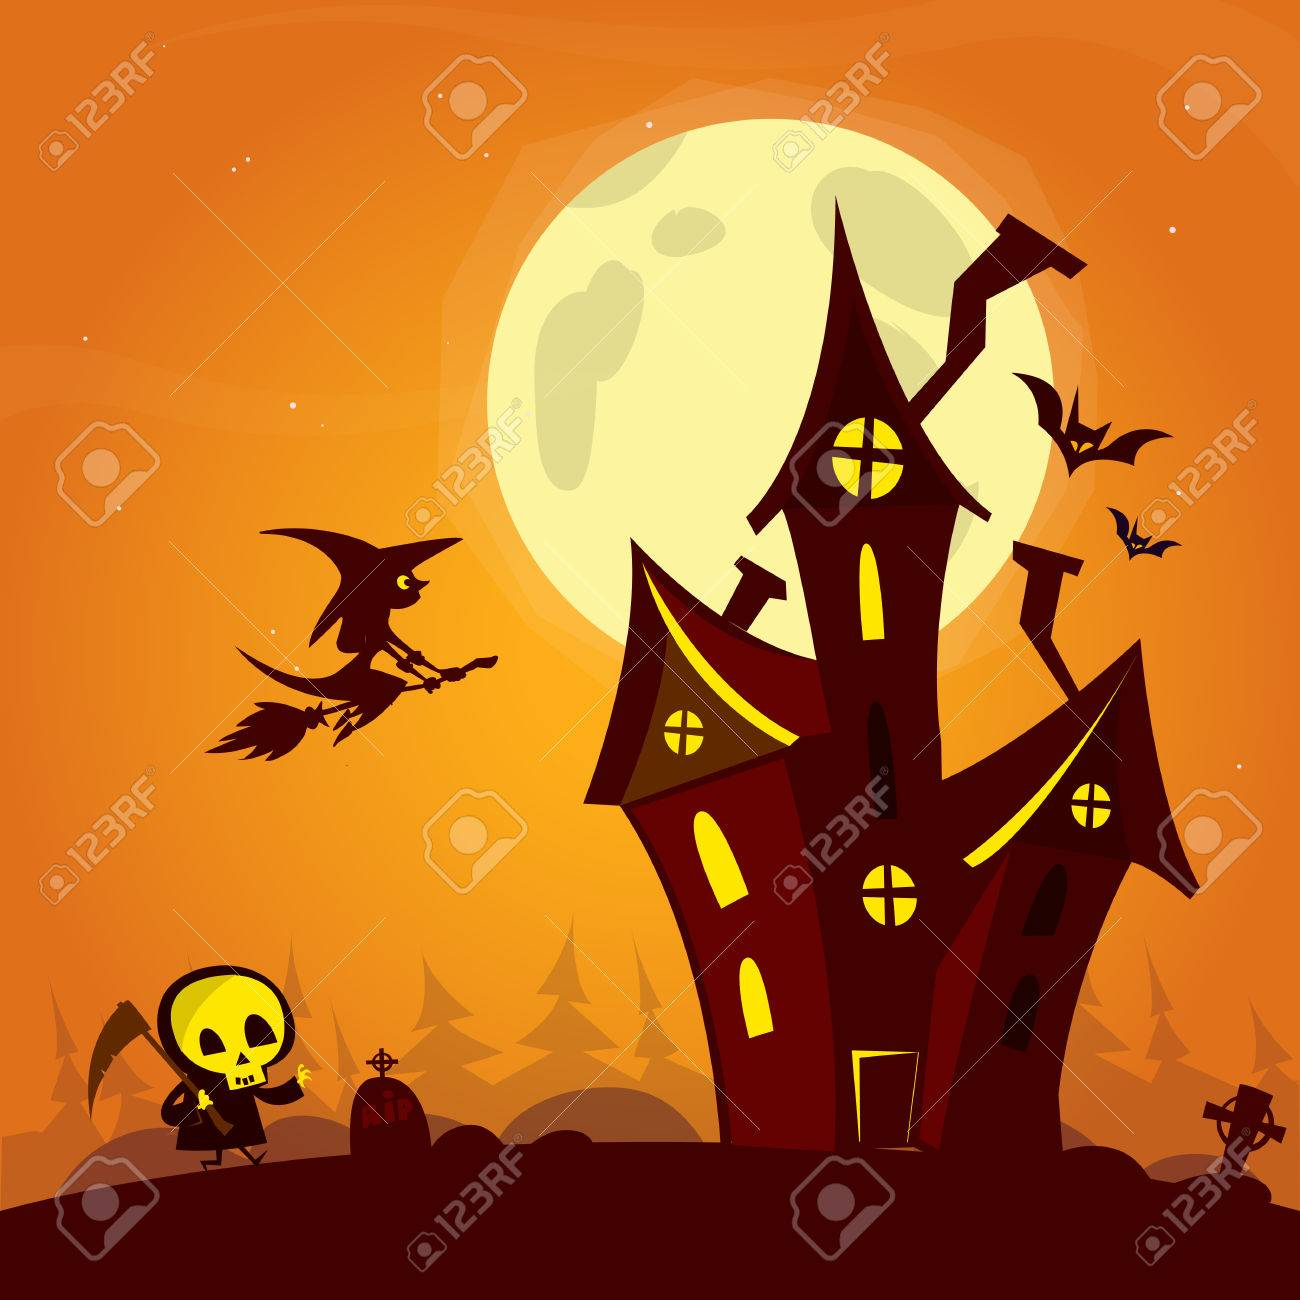 spooky old ghost house with fool moon and flying witch halloween cardposter vector illustration